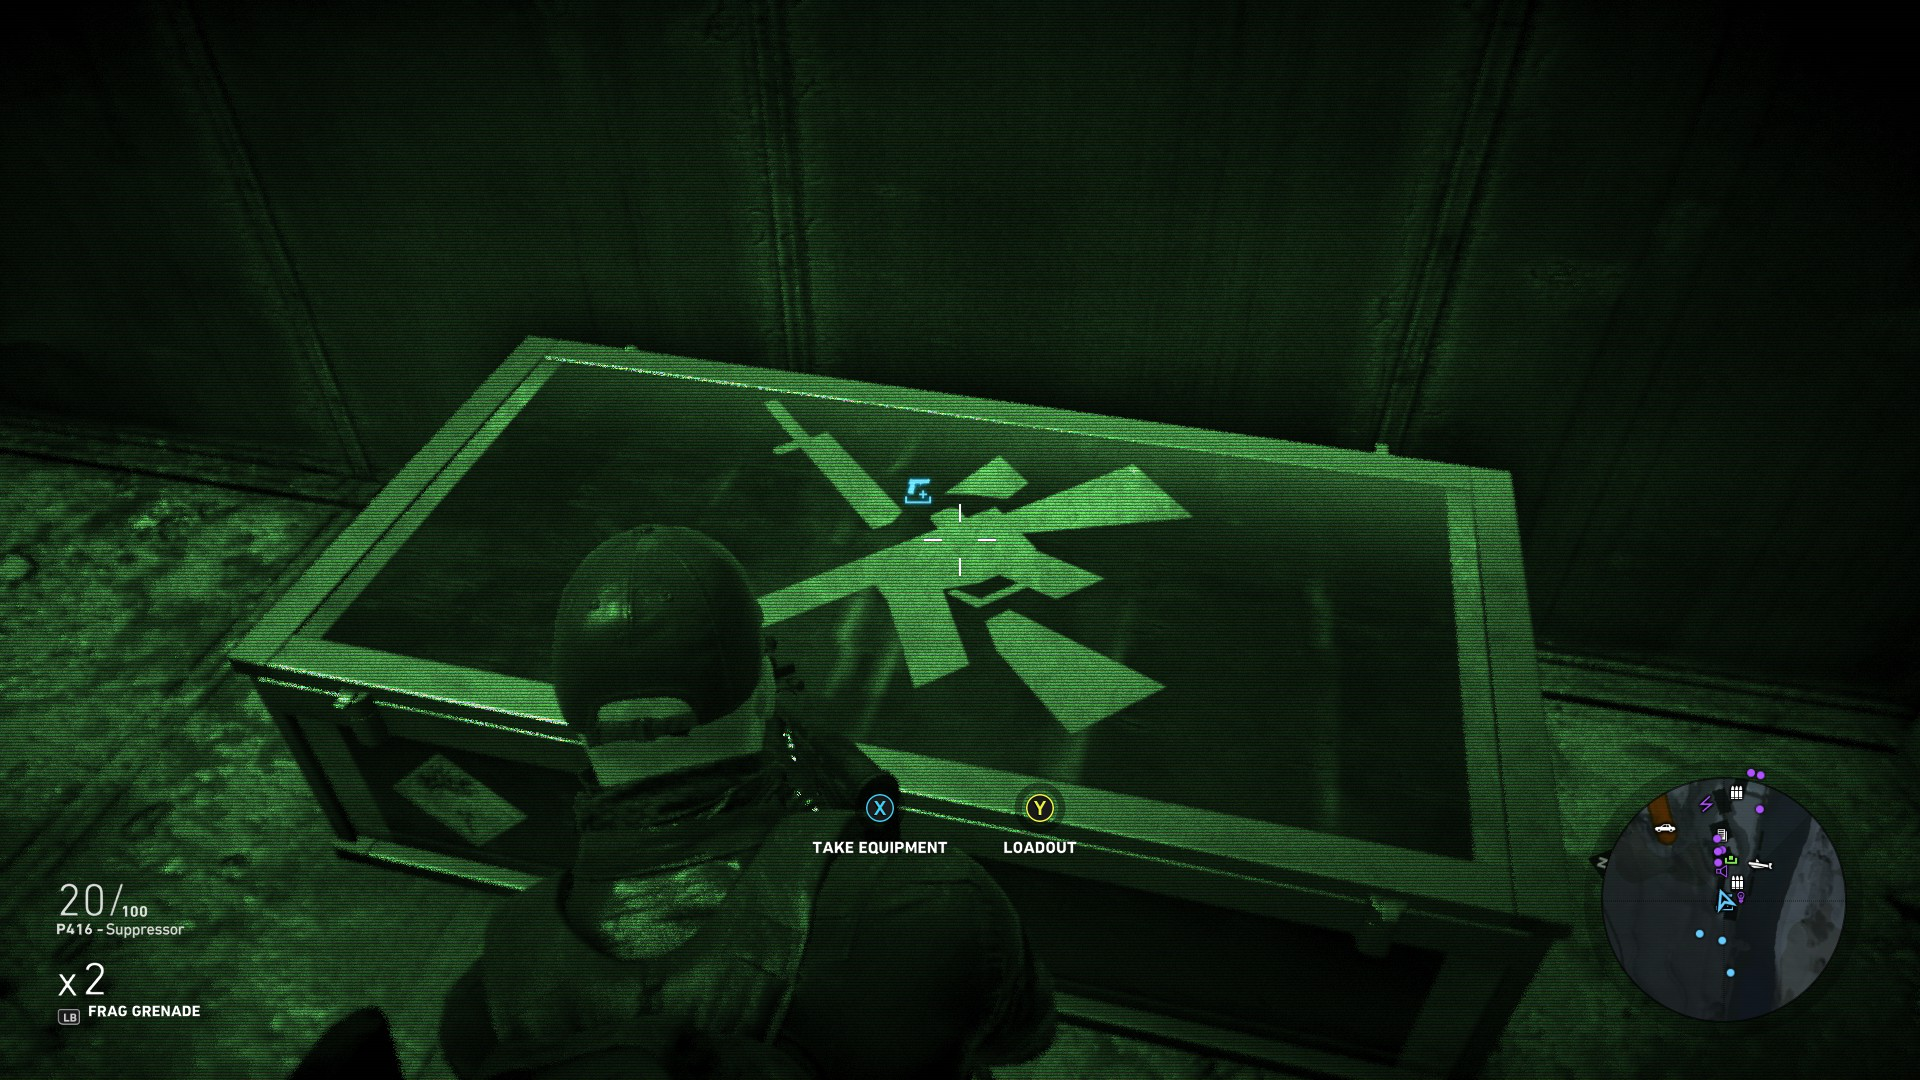 ACR Weapon case image - The ACR Assault Rifle location in Ghost Recon Wildlands